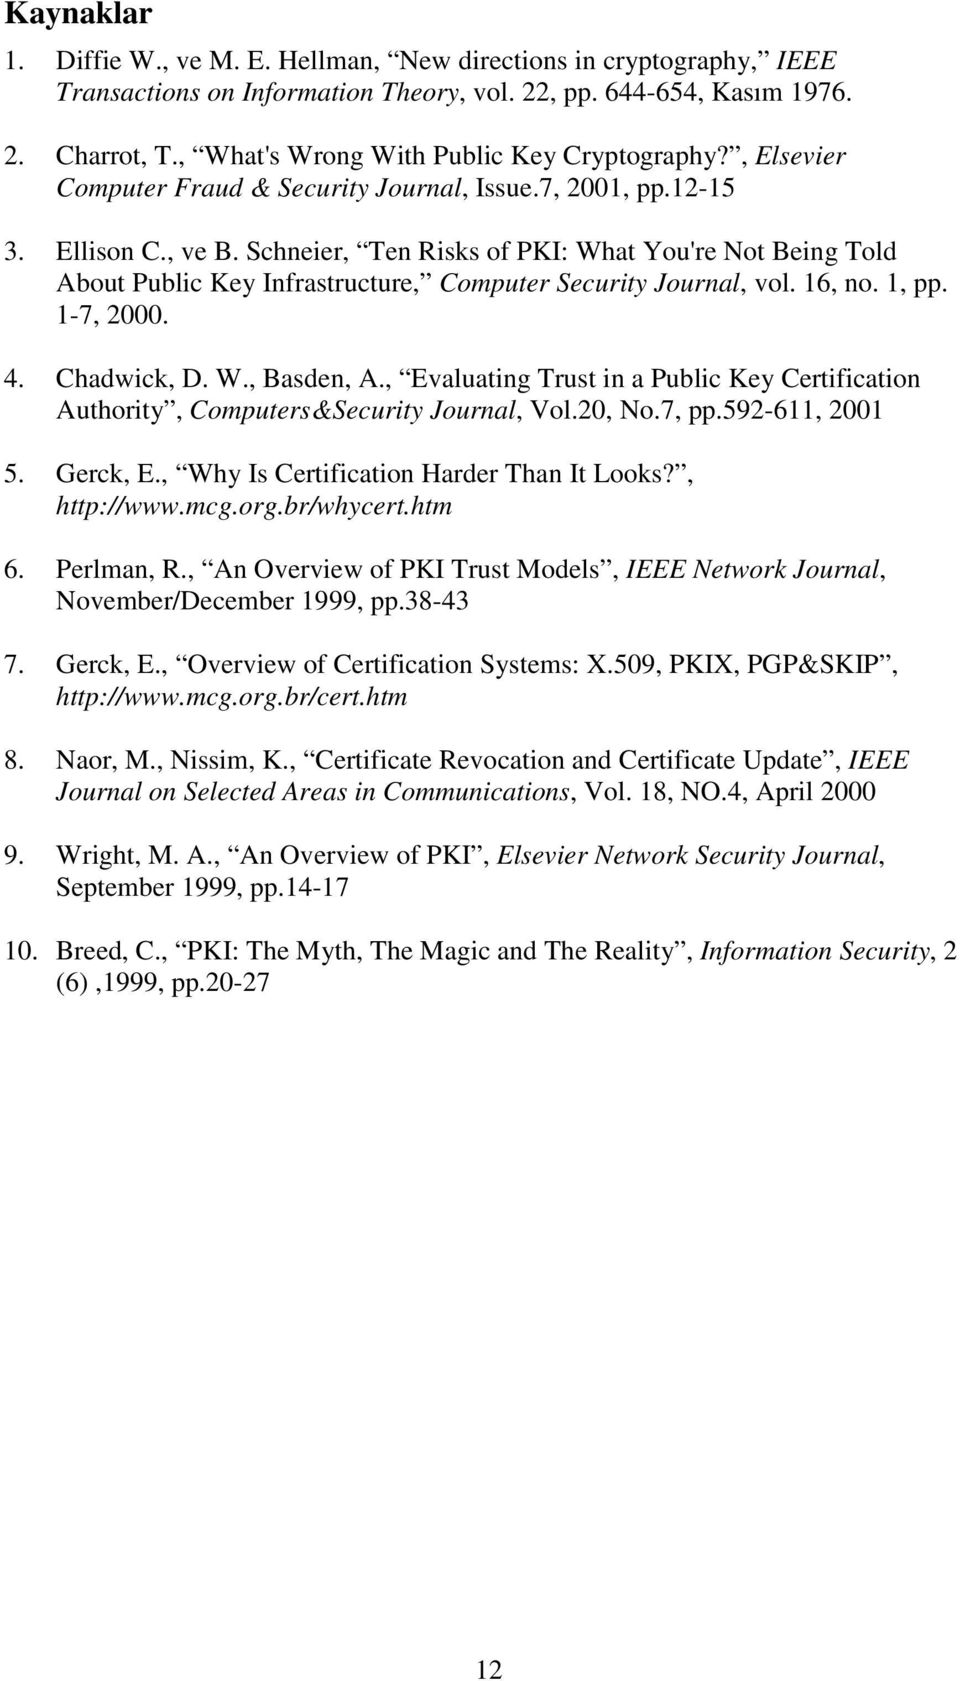 Schneier, Ten Risks of PKI: What You're Not Being Told About Public Key Infrastructure, Computer Security Journal, vol. 16, no. 1, pp. 1-7, 2000. 4. Chadwick, D. W., Basden, A.